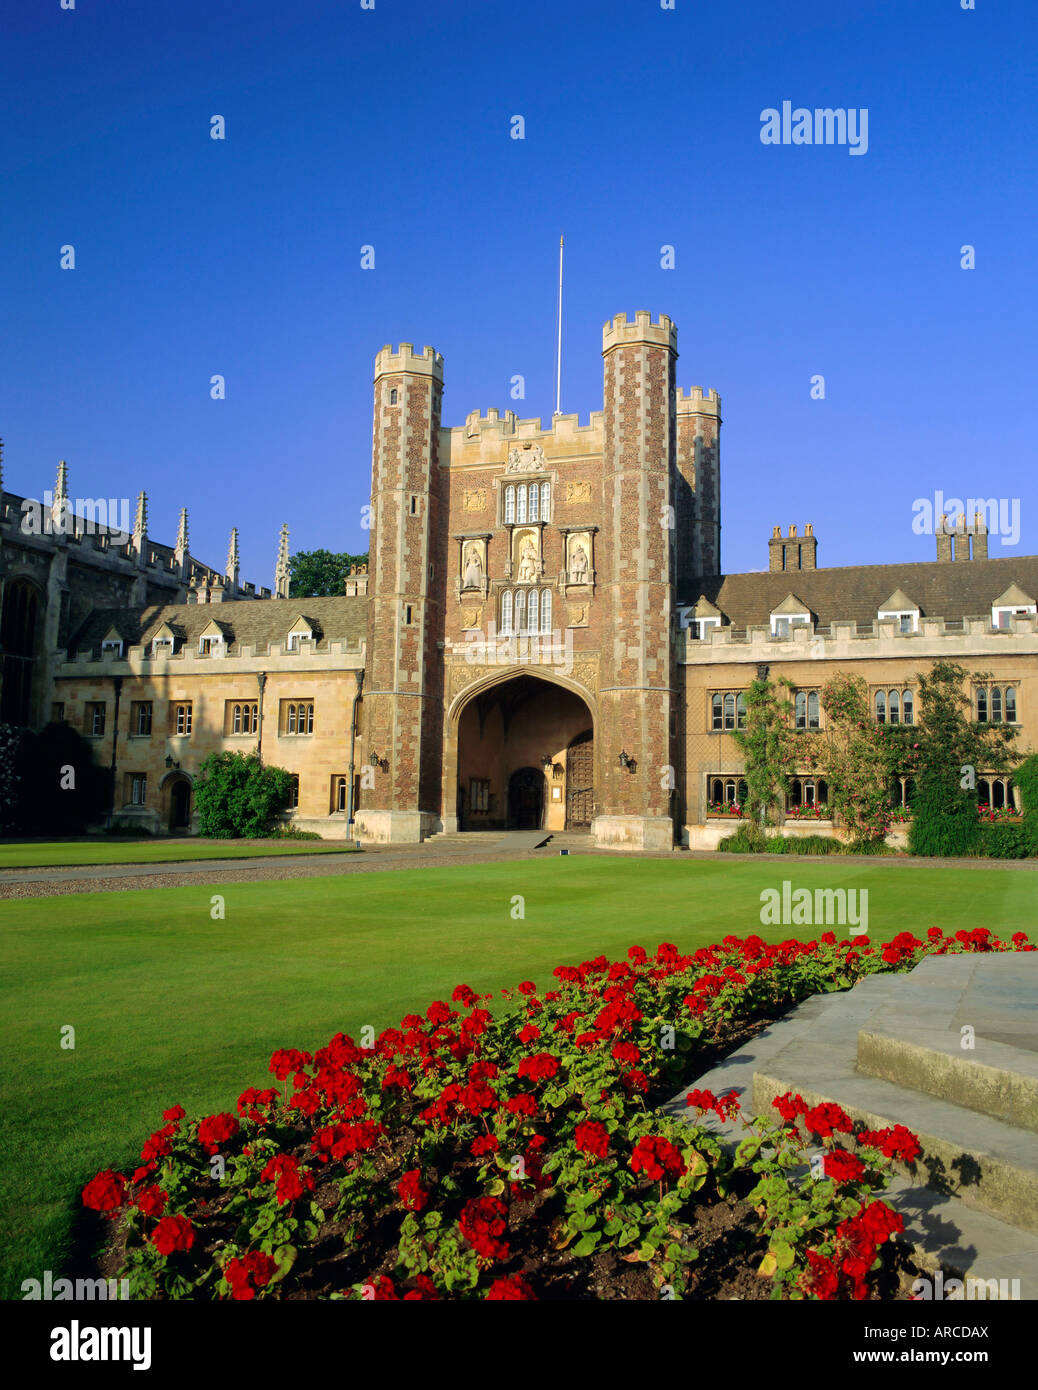 The Great Court, view to the Great Gate, Trinity College, Cambridge, Cambridgeshire, England, UK - Stock Image